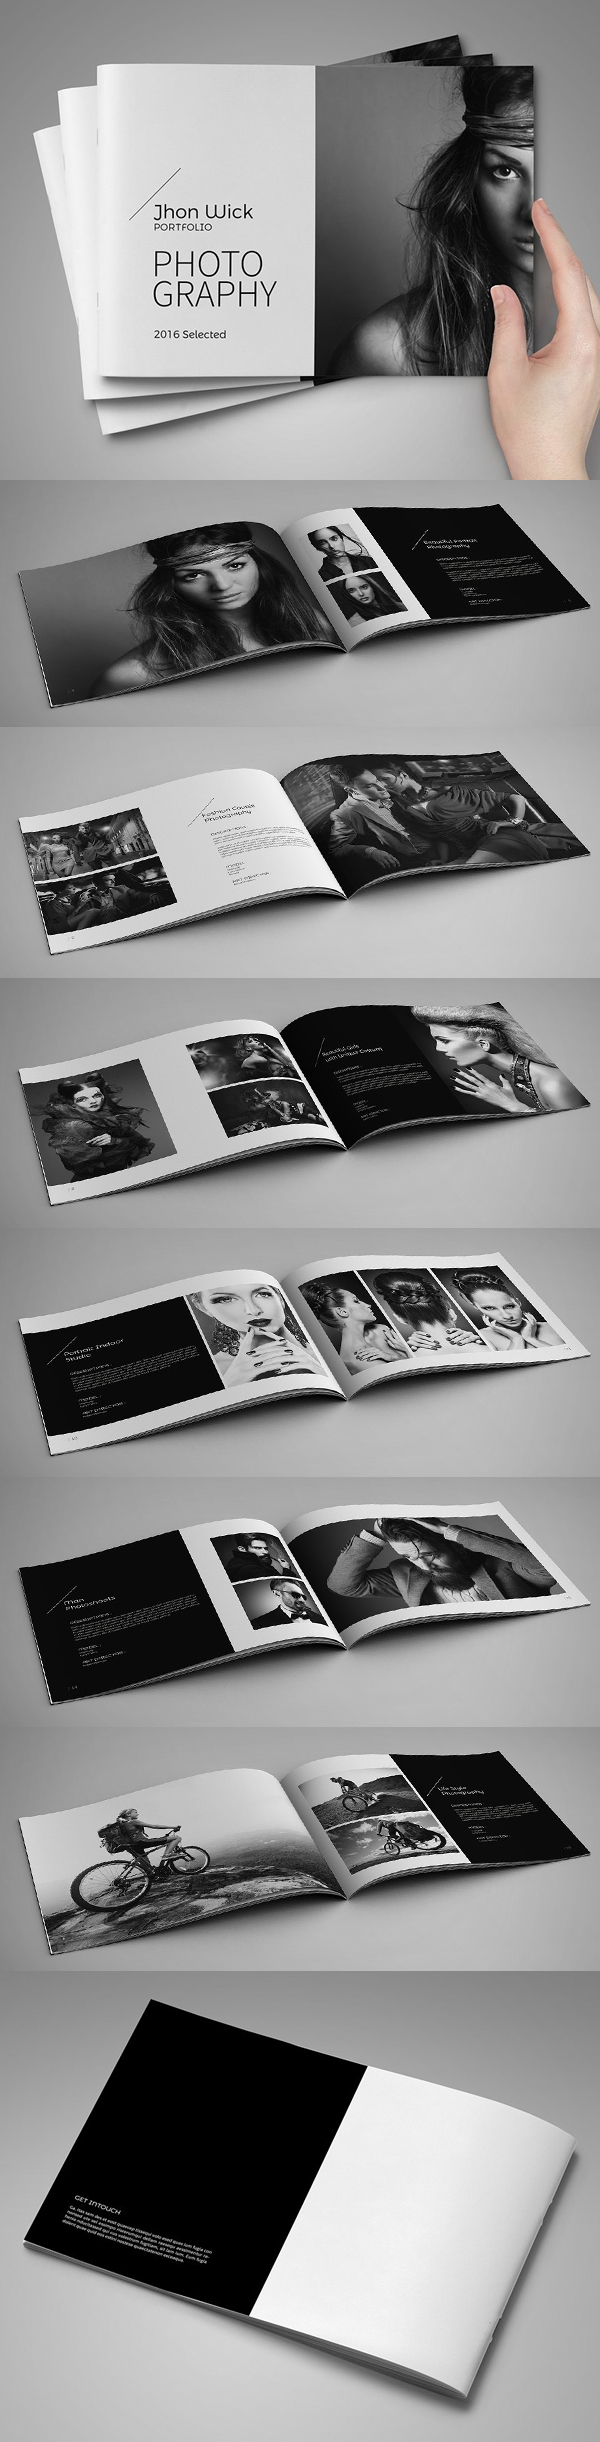 100 Professional Corporate Brochure Templates - 29